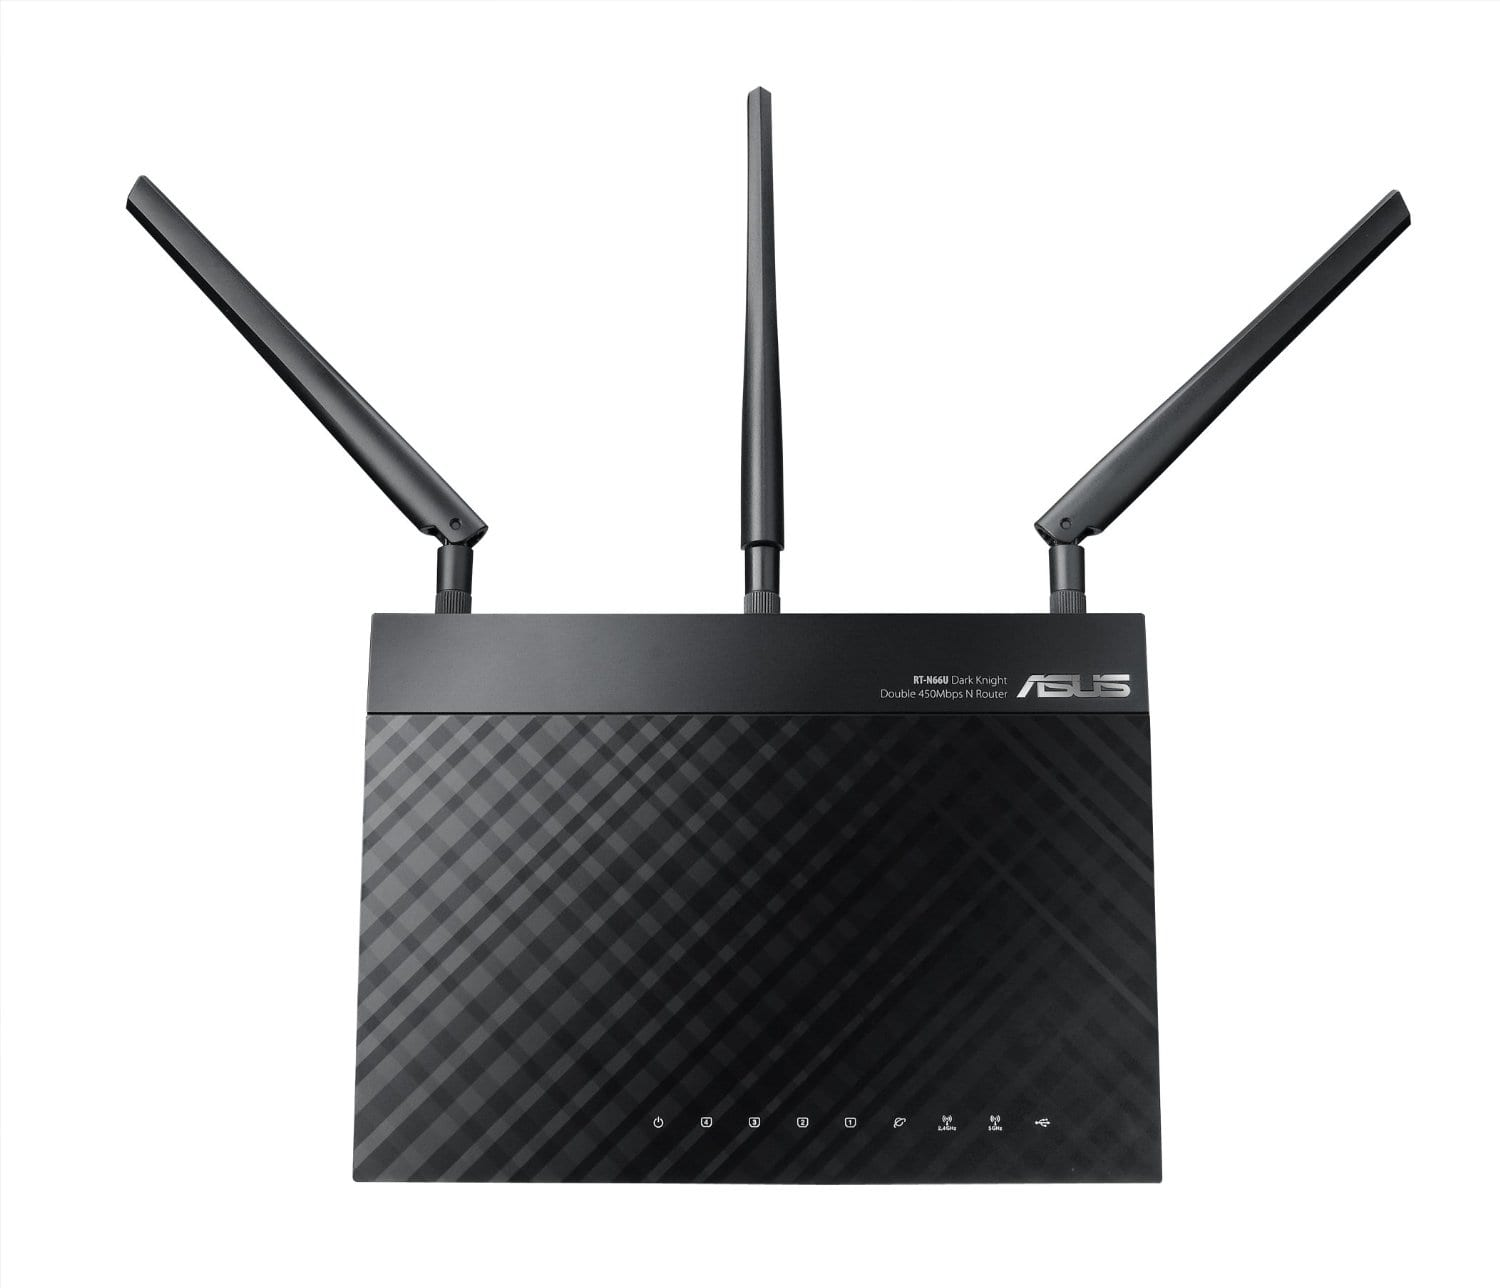 best wifi router for home 2014